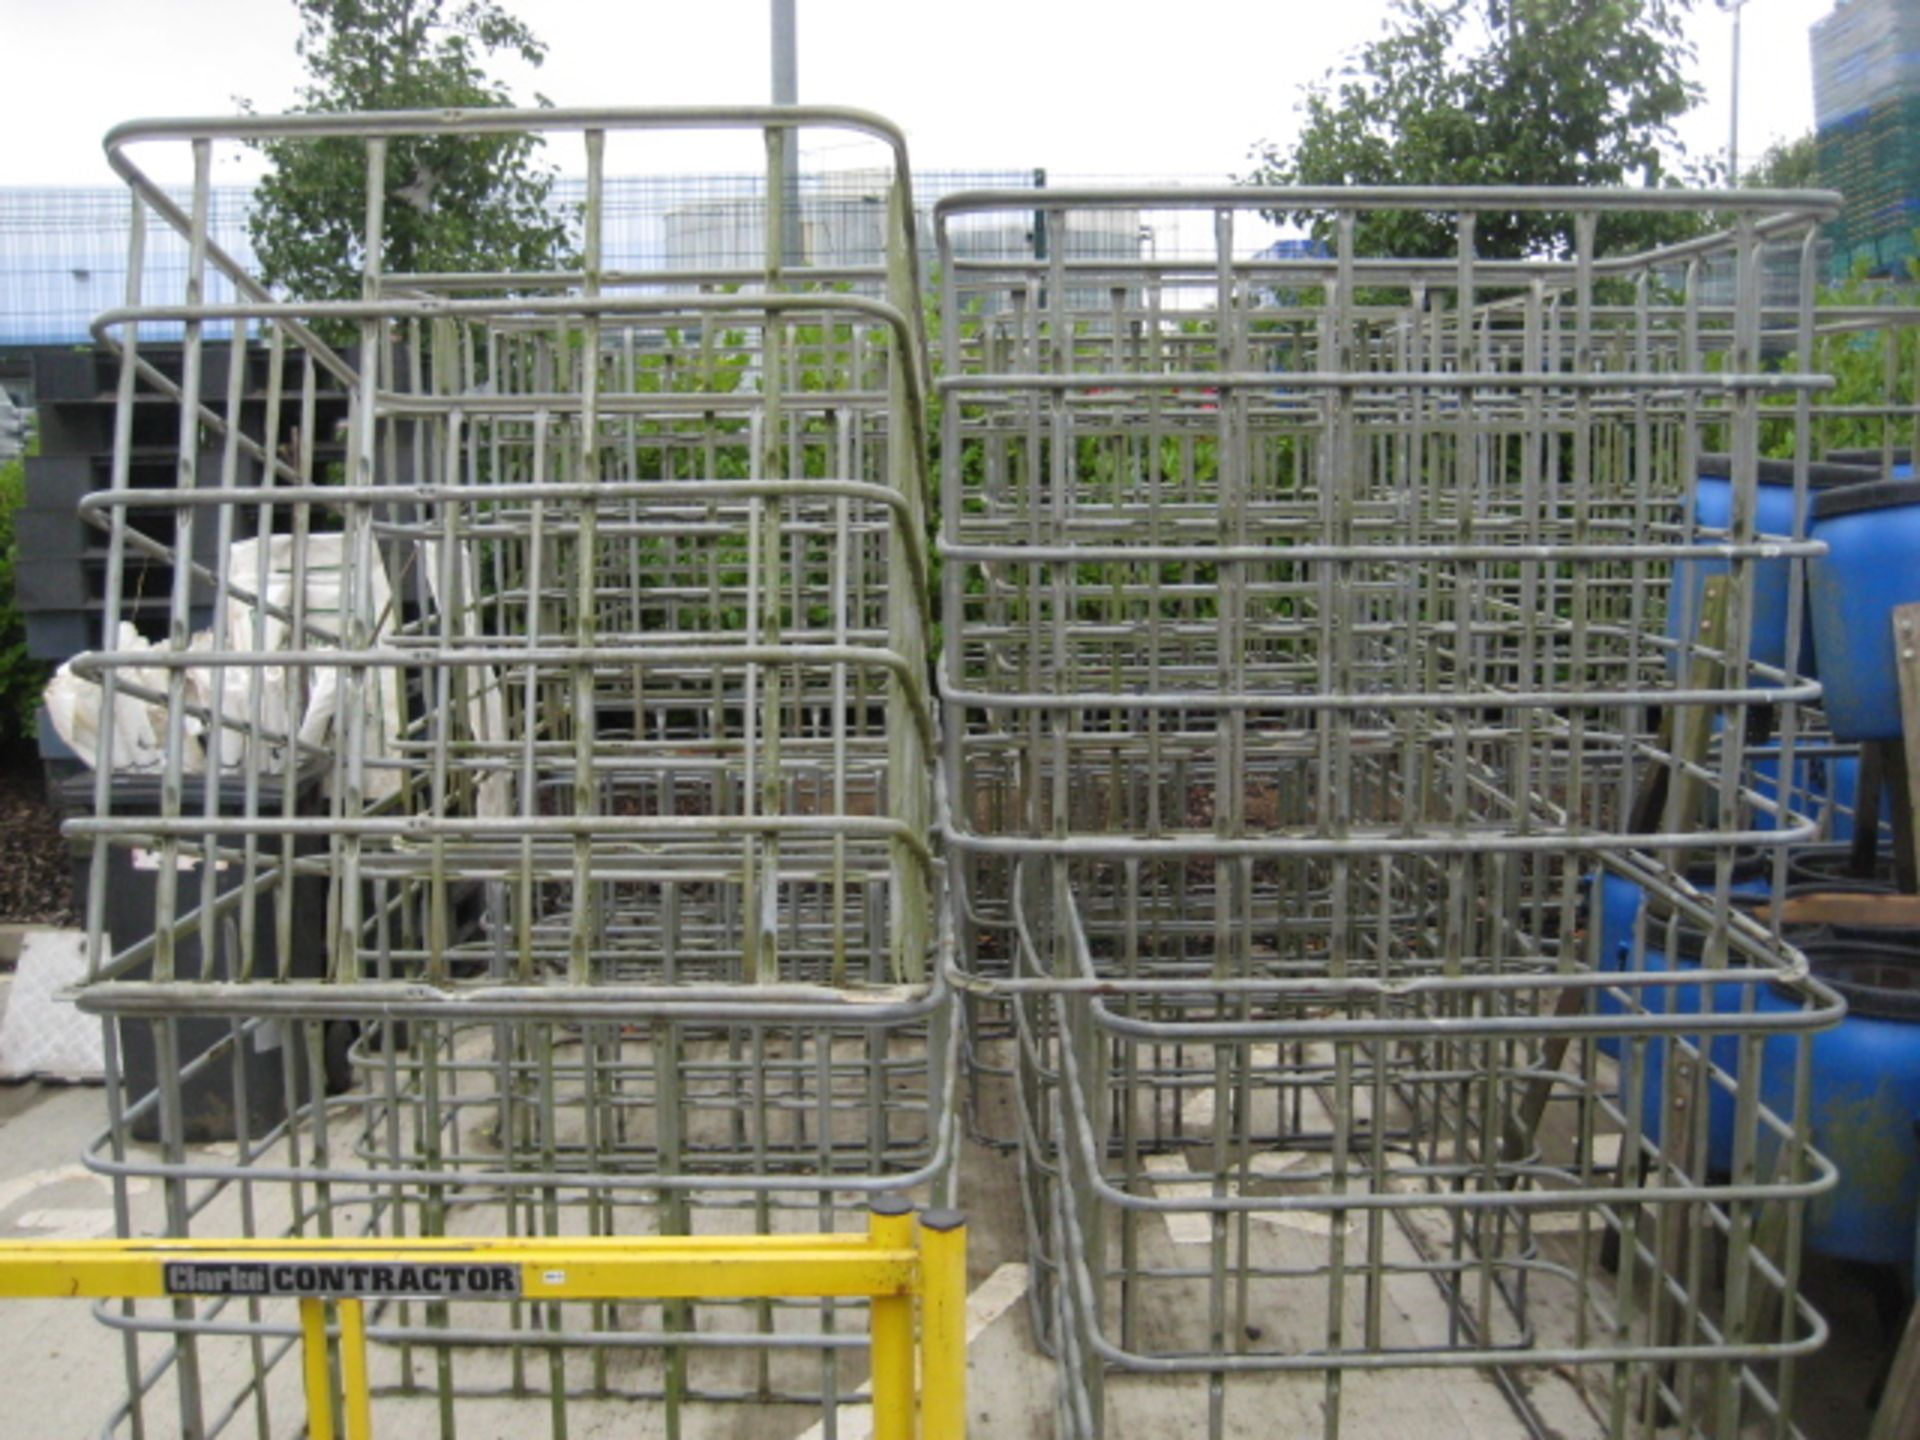 Lot 4120 - 16 various IBC container galvanized cages